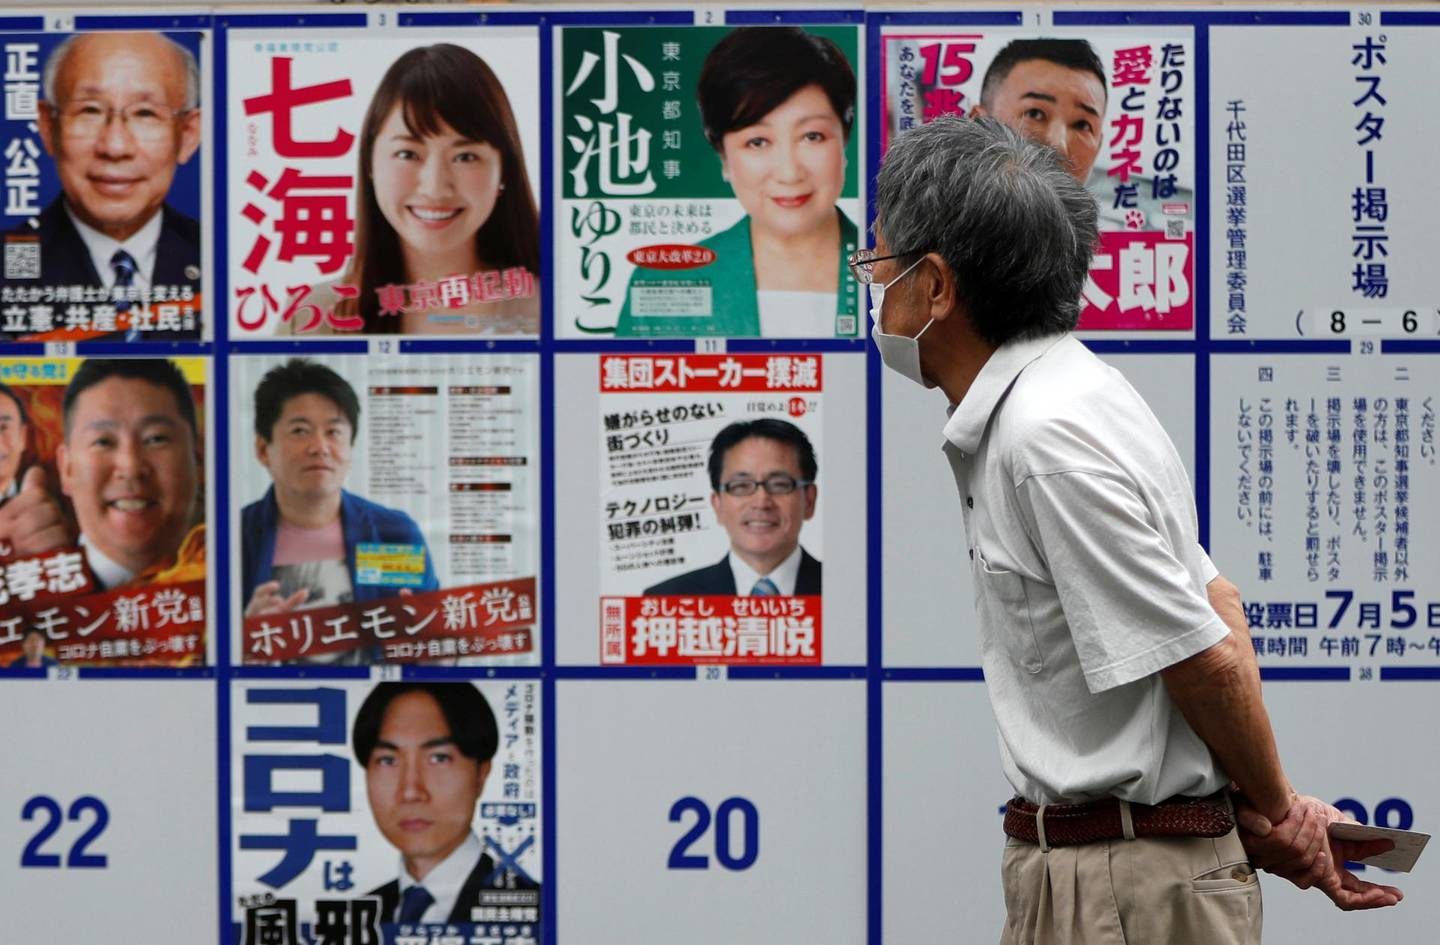 A voter wearing a protective face mask watches candidate posters, including current governor Yuriko Koike, for the Tokyo Governor election in front of a voting station amid the coronavirus disease (COVID-19) outbreak, in Tokyo, Japan July 5, 2020.  REUTERS/Issei Kato